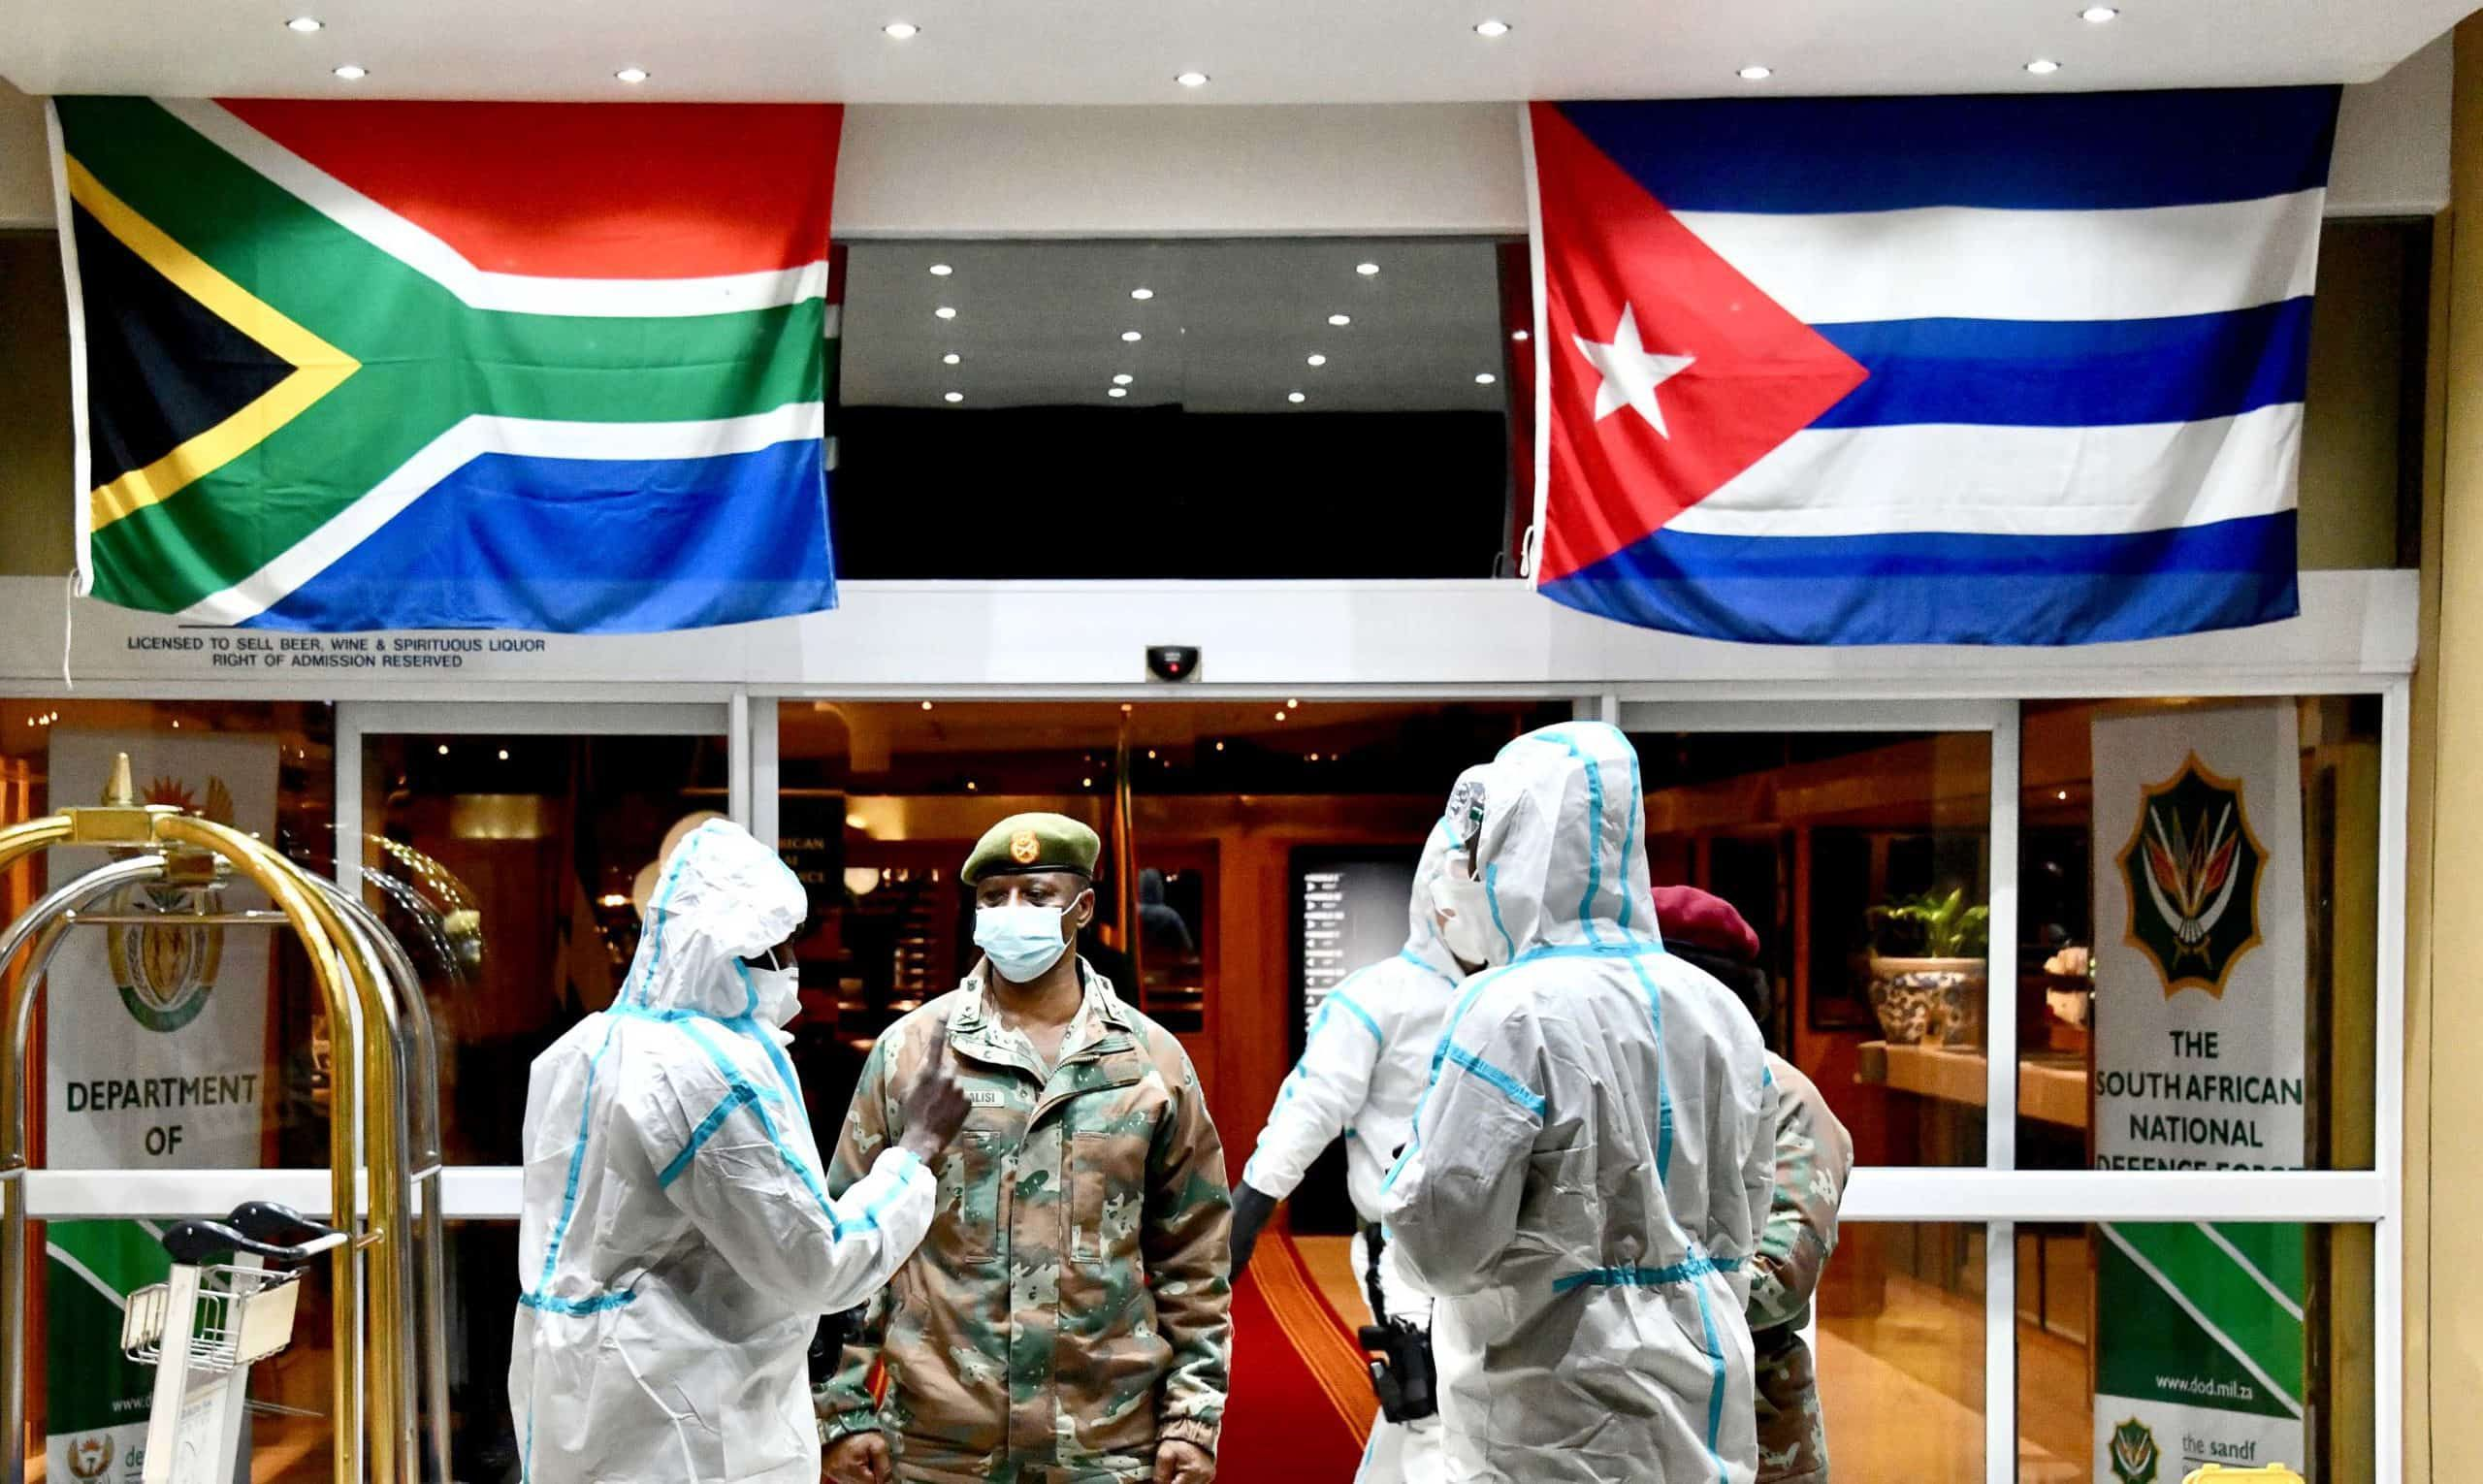 DA calls on DIRCO and Treasury to assure SA medical students in Cuba are brought home